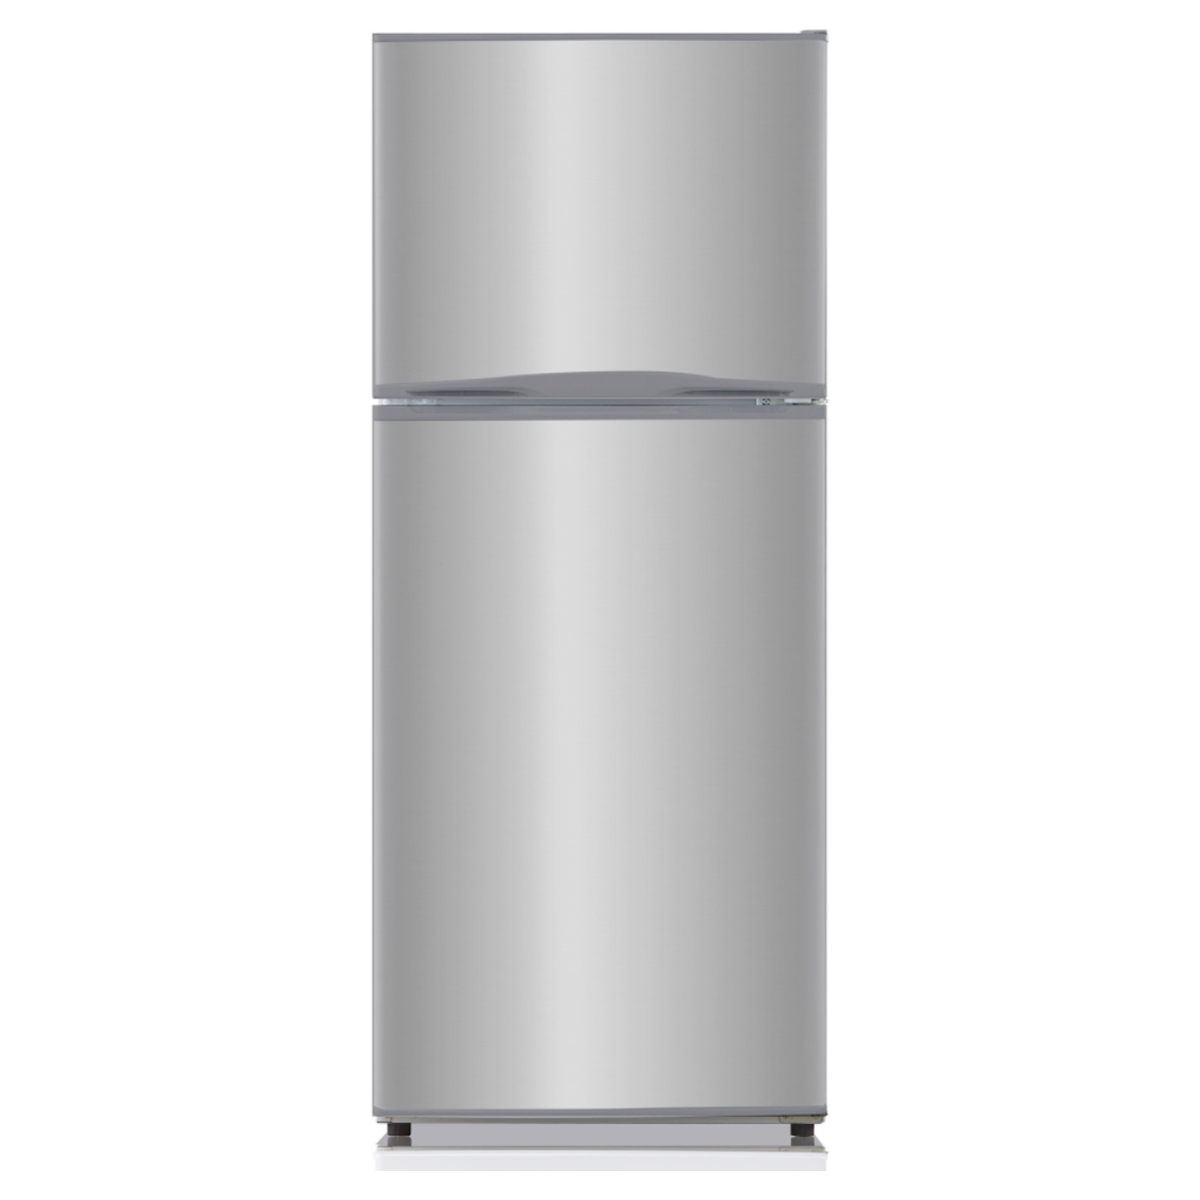 Esatto ETM292X 292L Top Mount Fridge